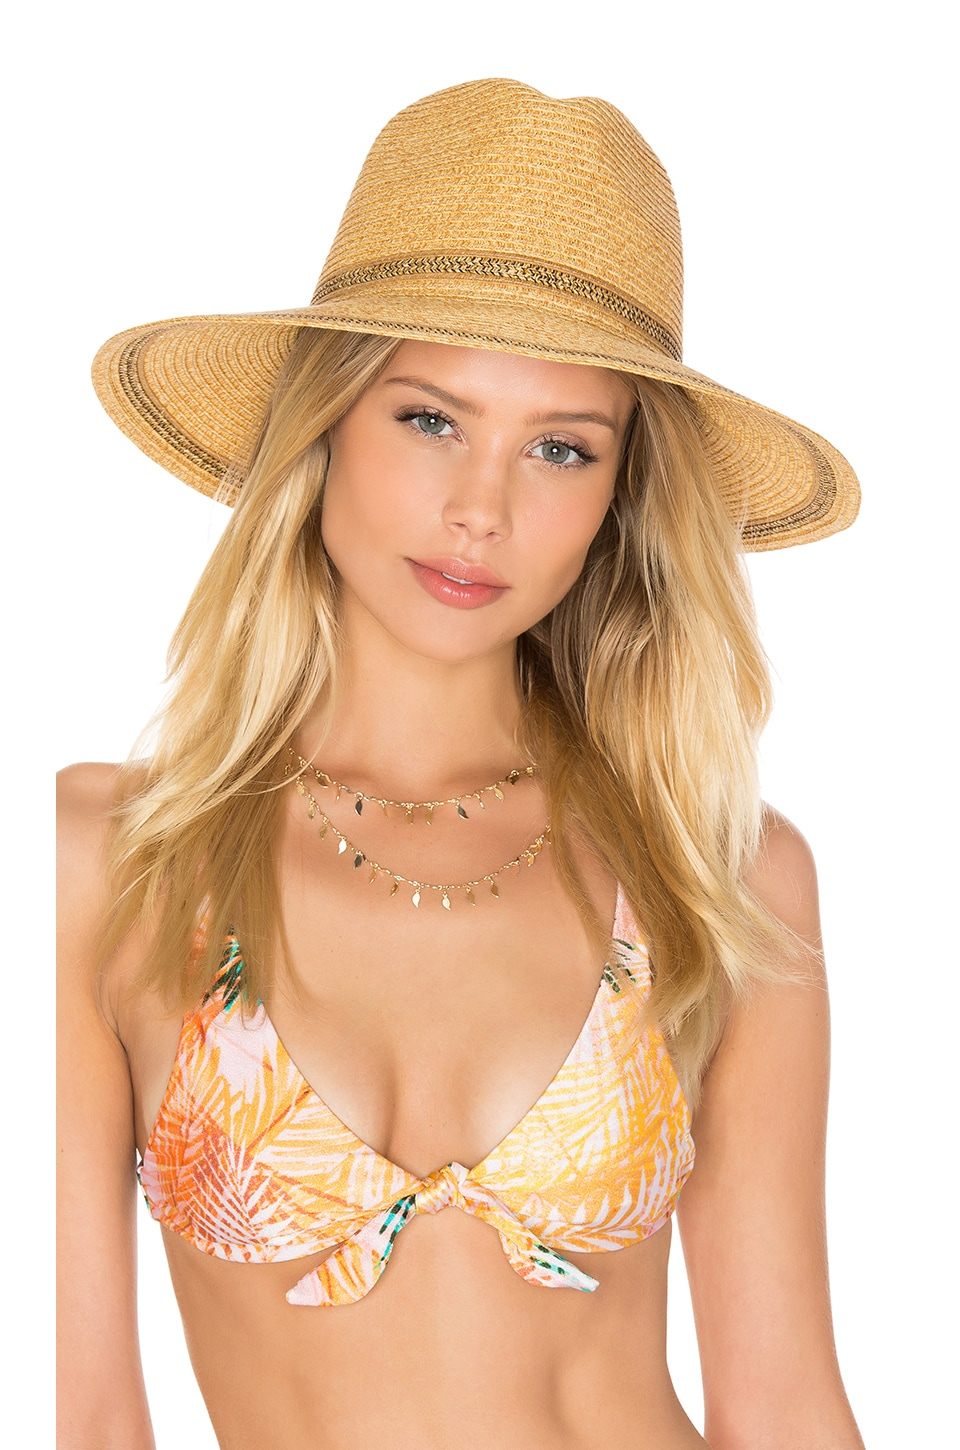 L*SPACE Sunny Days Panama Hat in Natural